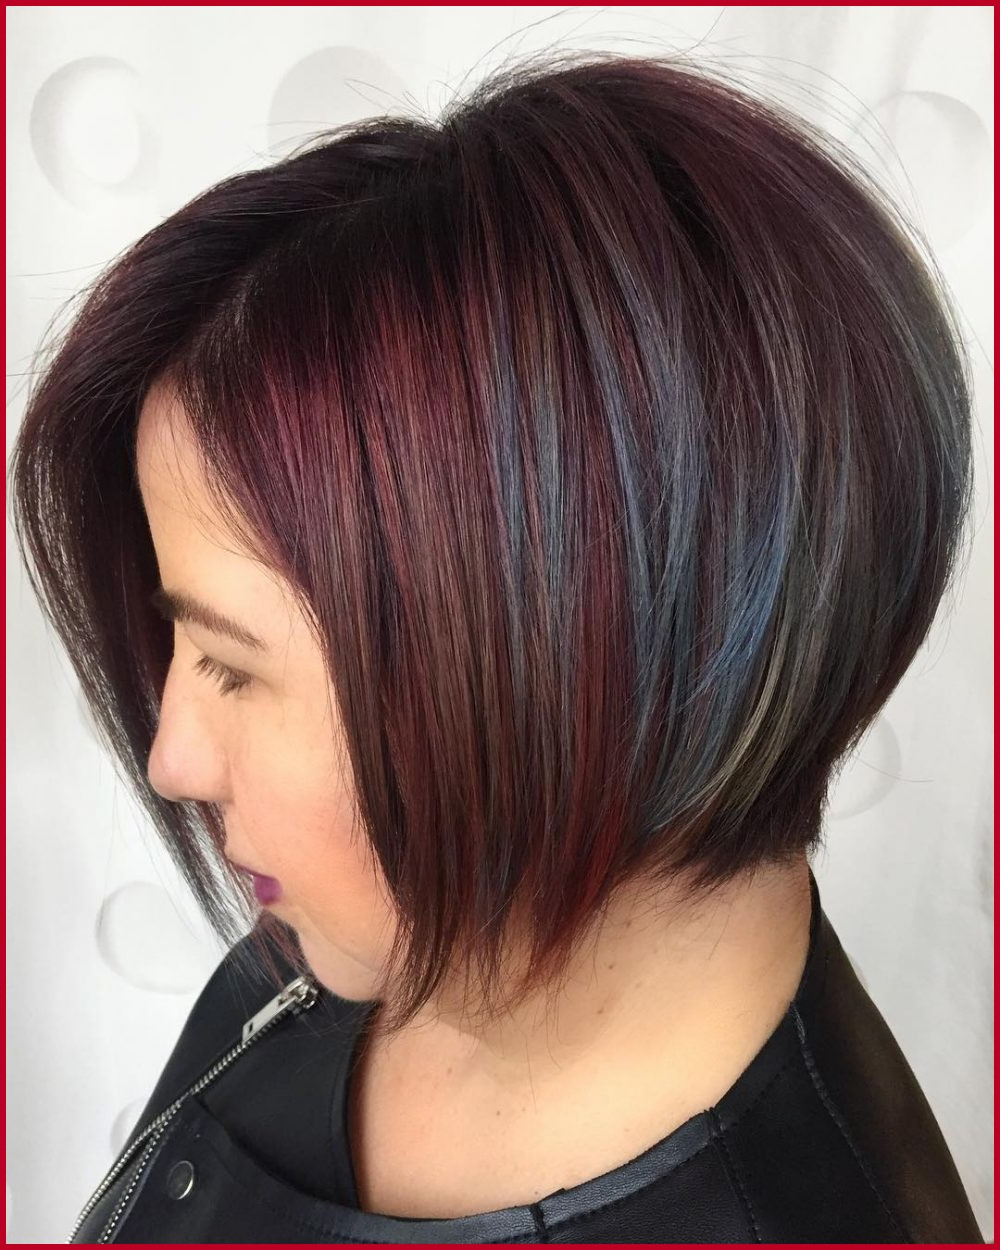 Short Length Hairstyles For Thick Hair 187411 34 Greatest Short Pertaining To Short Length Hairstyles For Thick Hair (View 5 of 25)